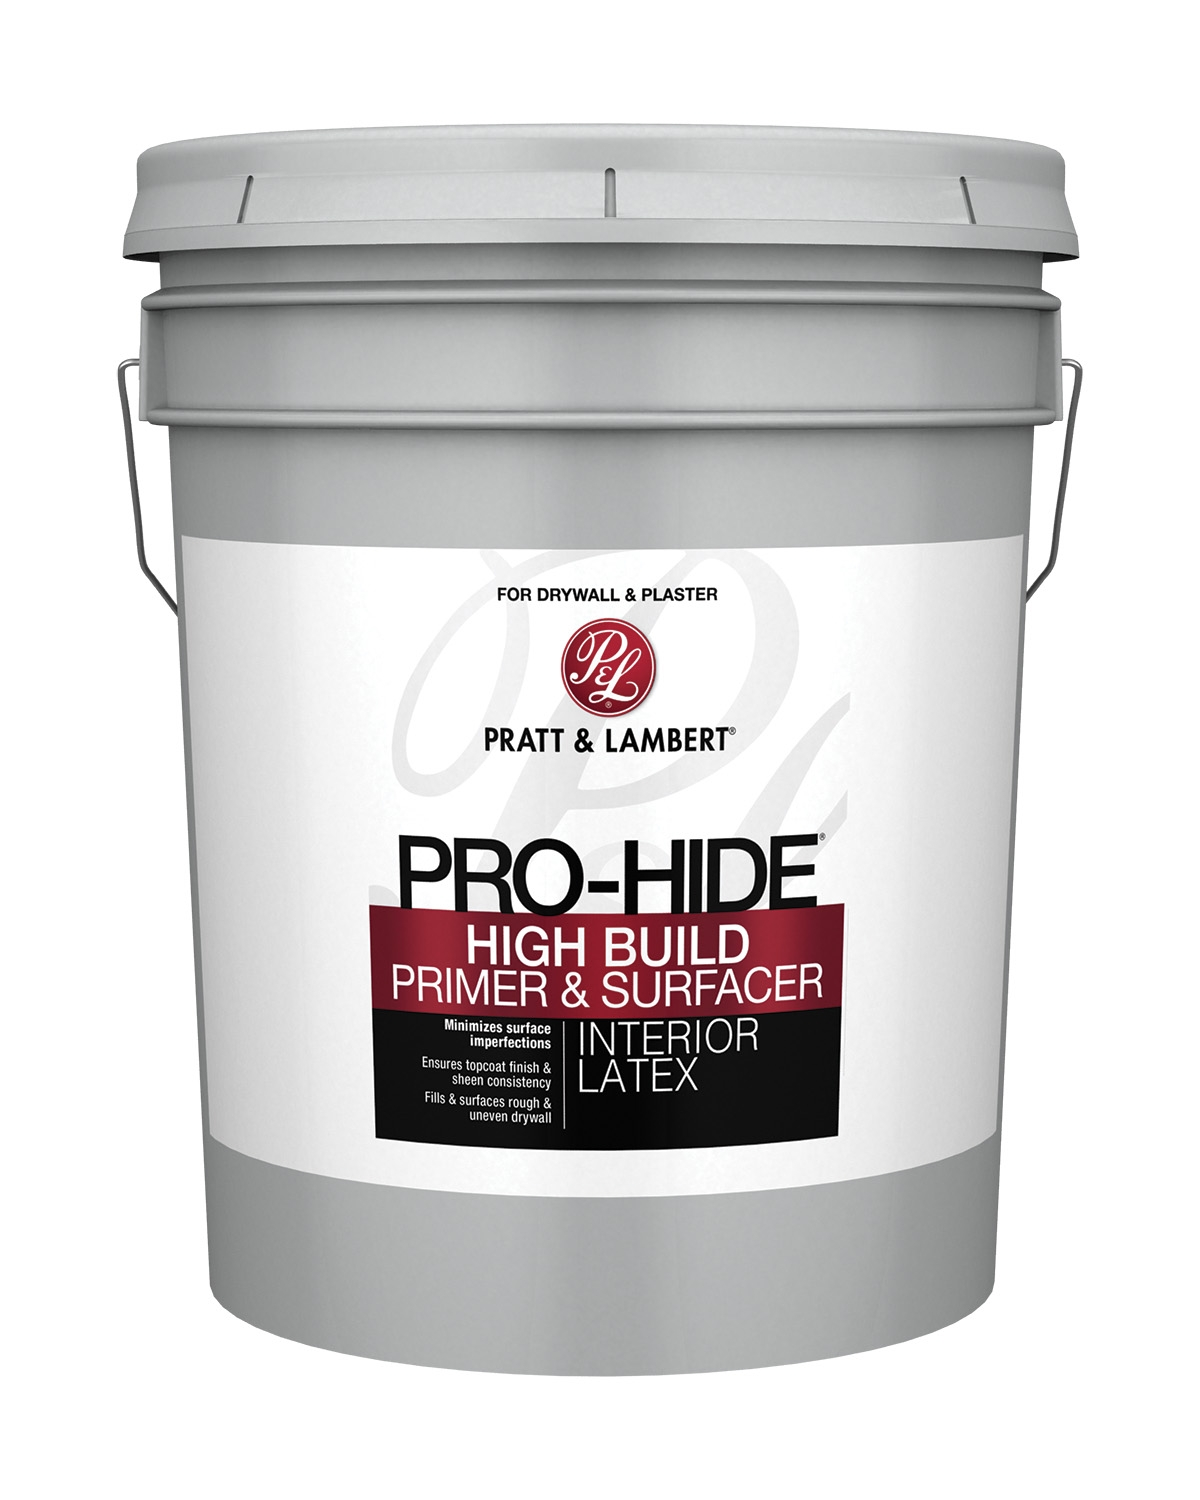 Pratt & Lambert® Pro-Hide® High Build Primer & Surfacer